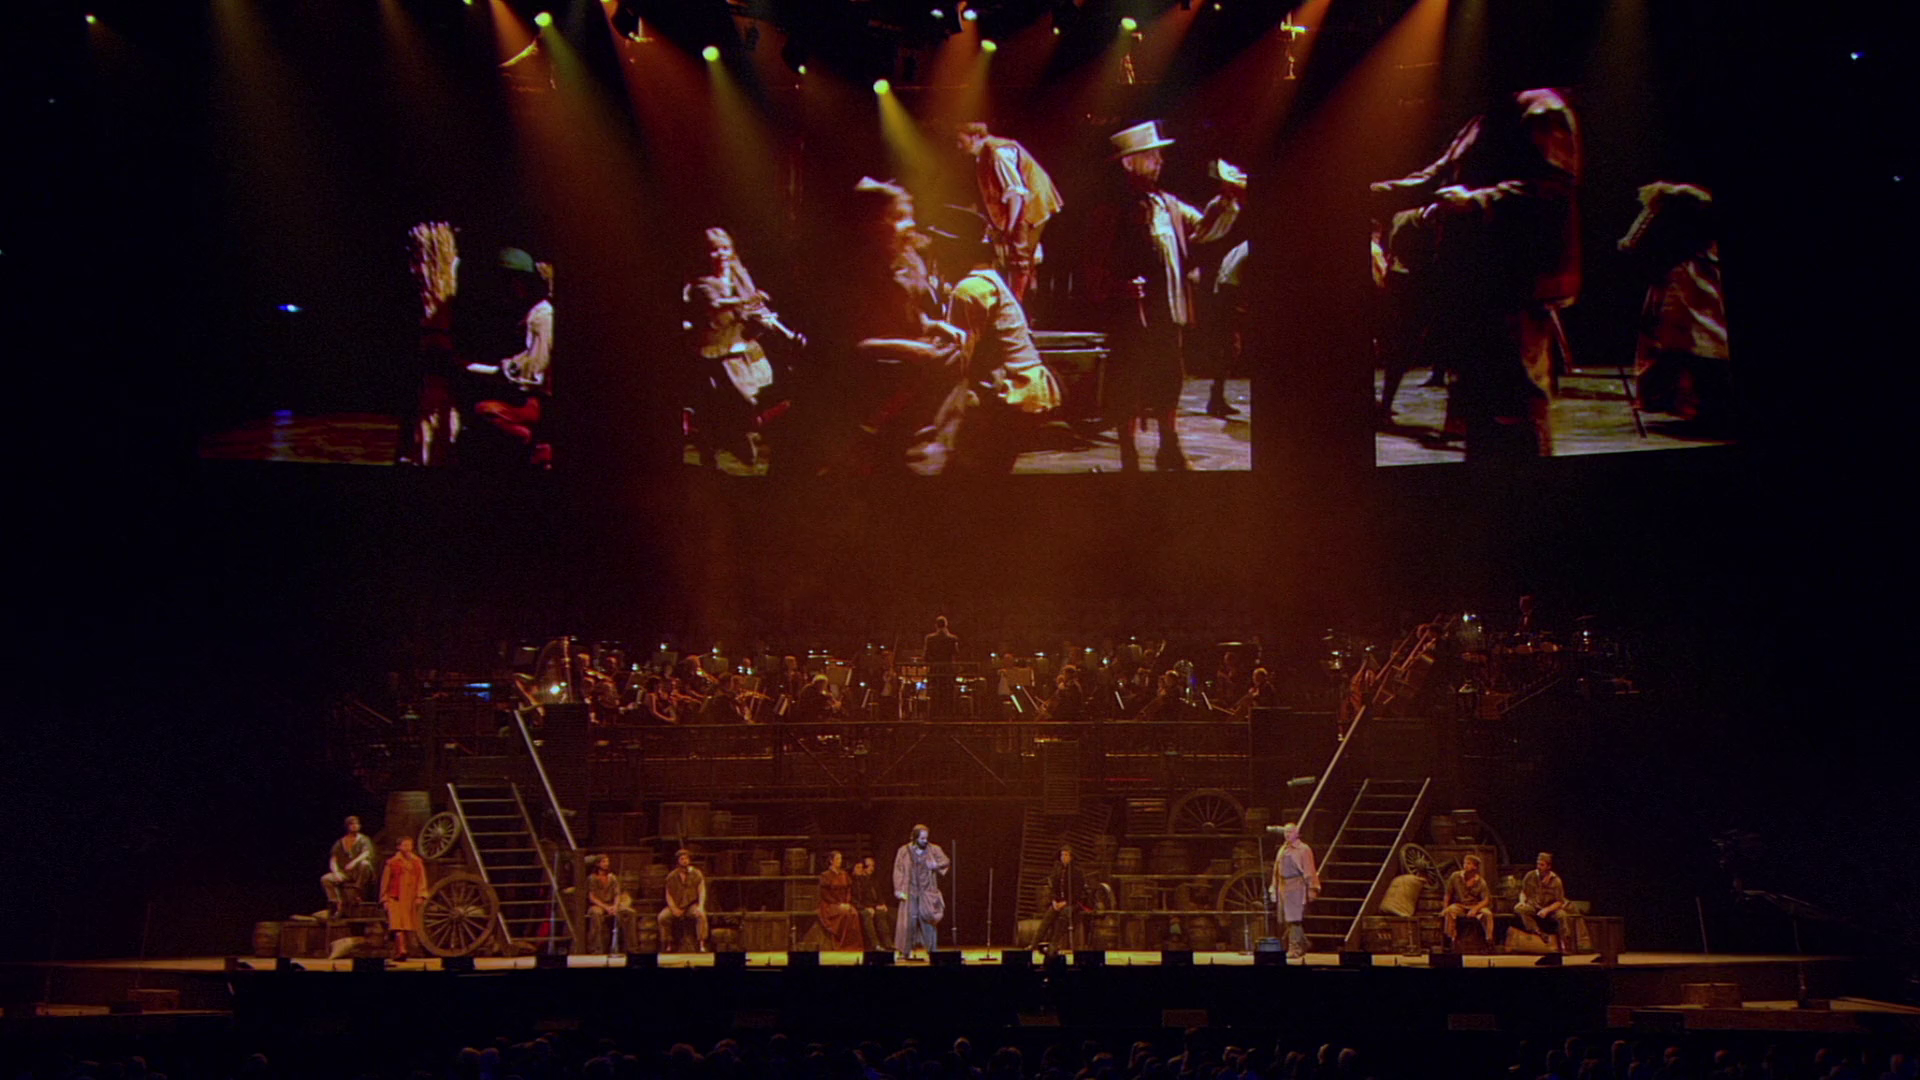 Download Les Miserables in Concert The 25th Anniversary 2010 1080p BluRay Torrent